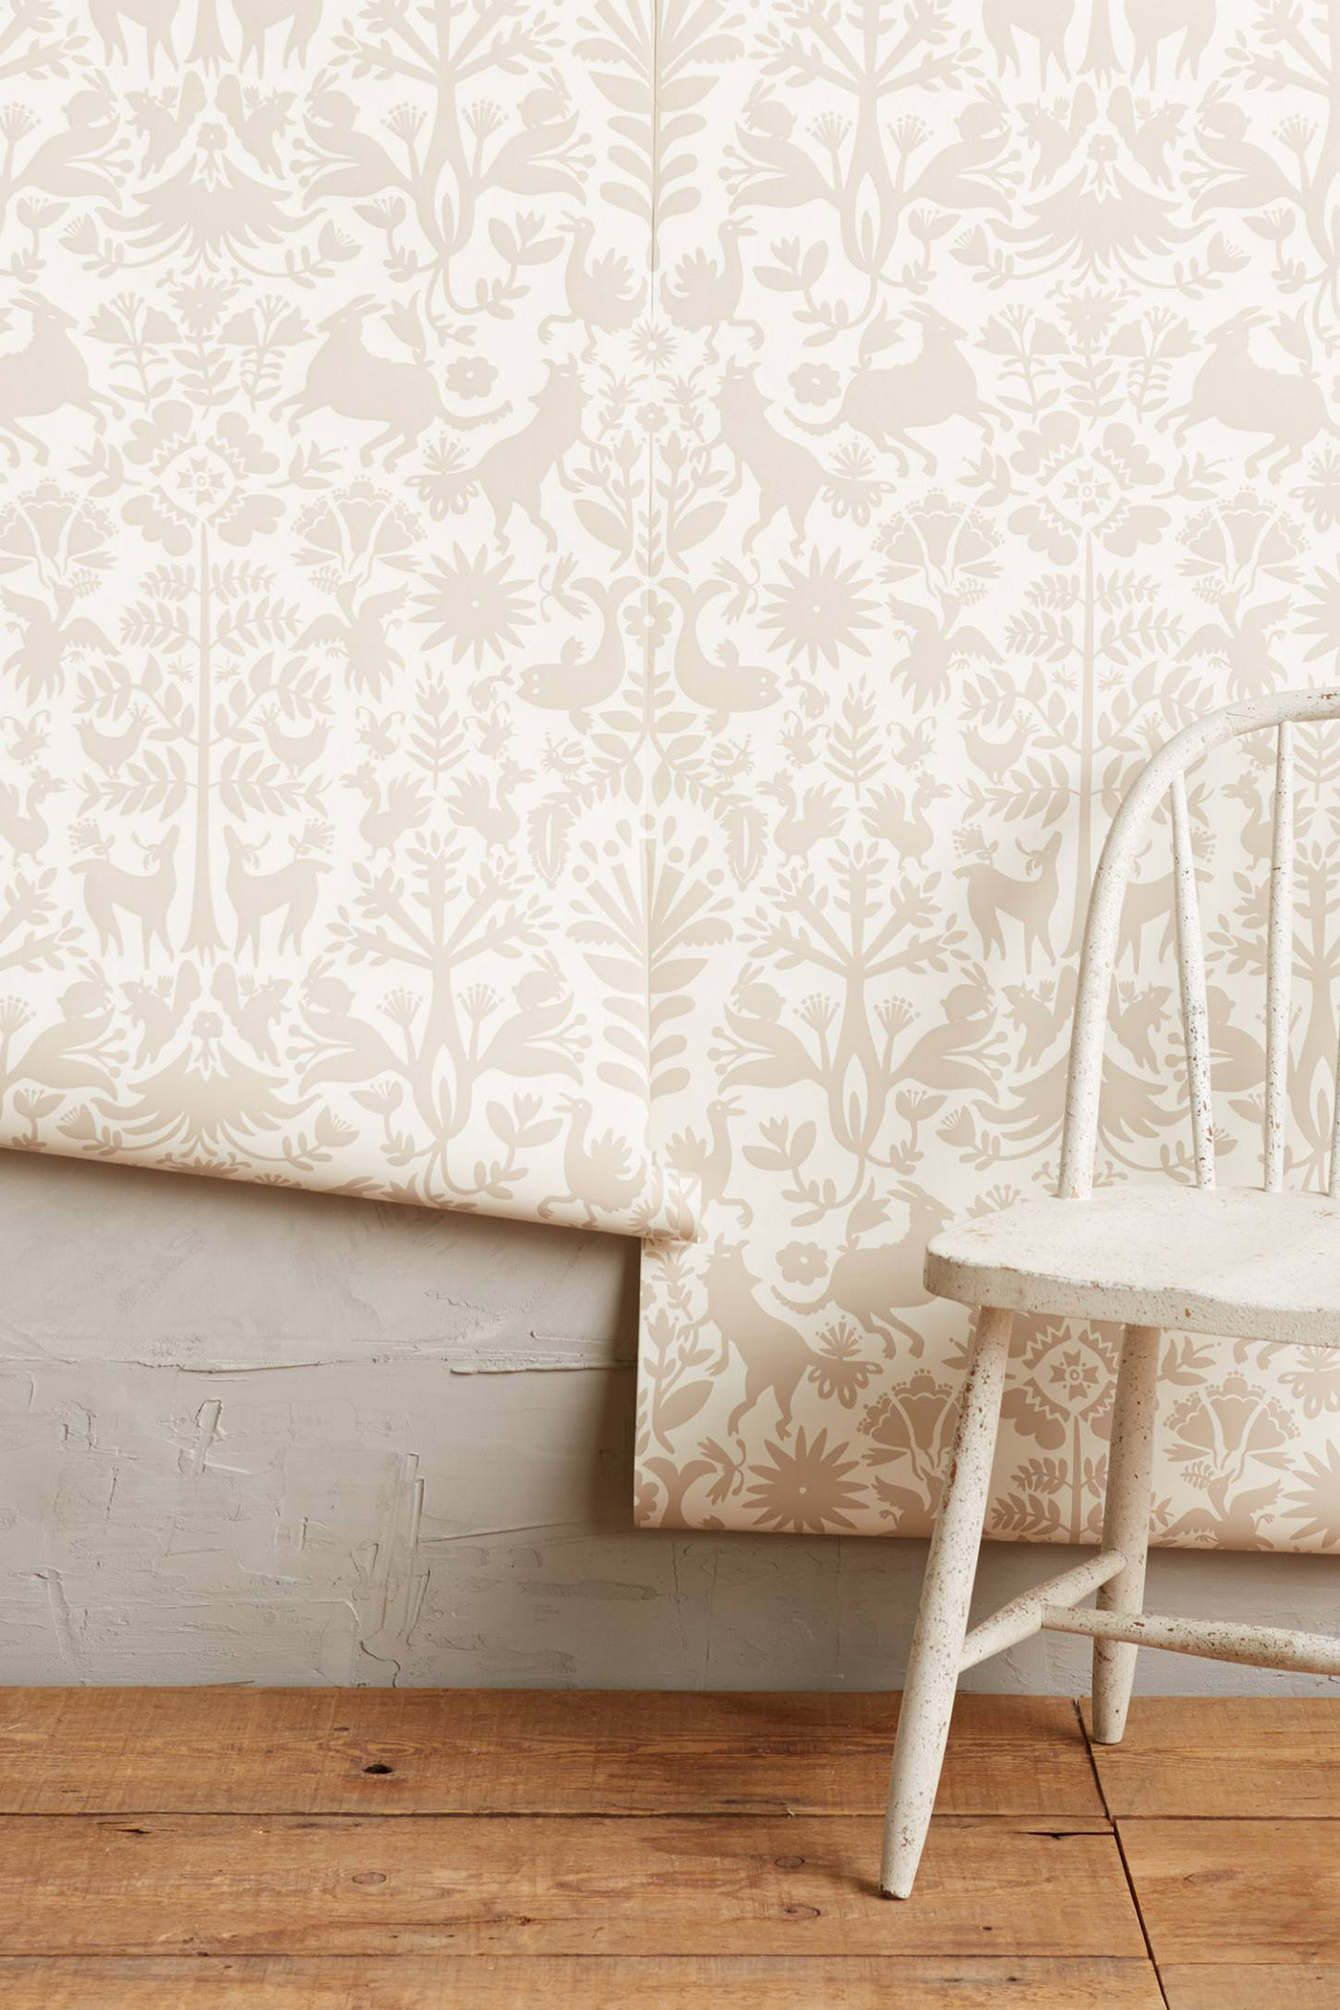 Hygge & West Emily Isabella Home wallpaper, Forest